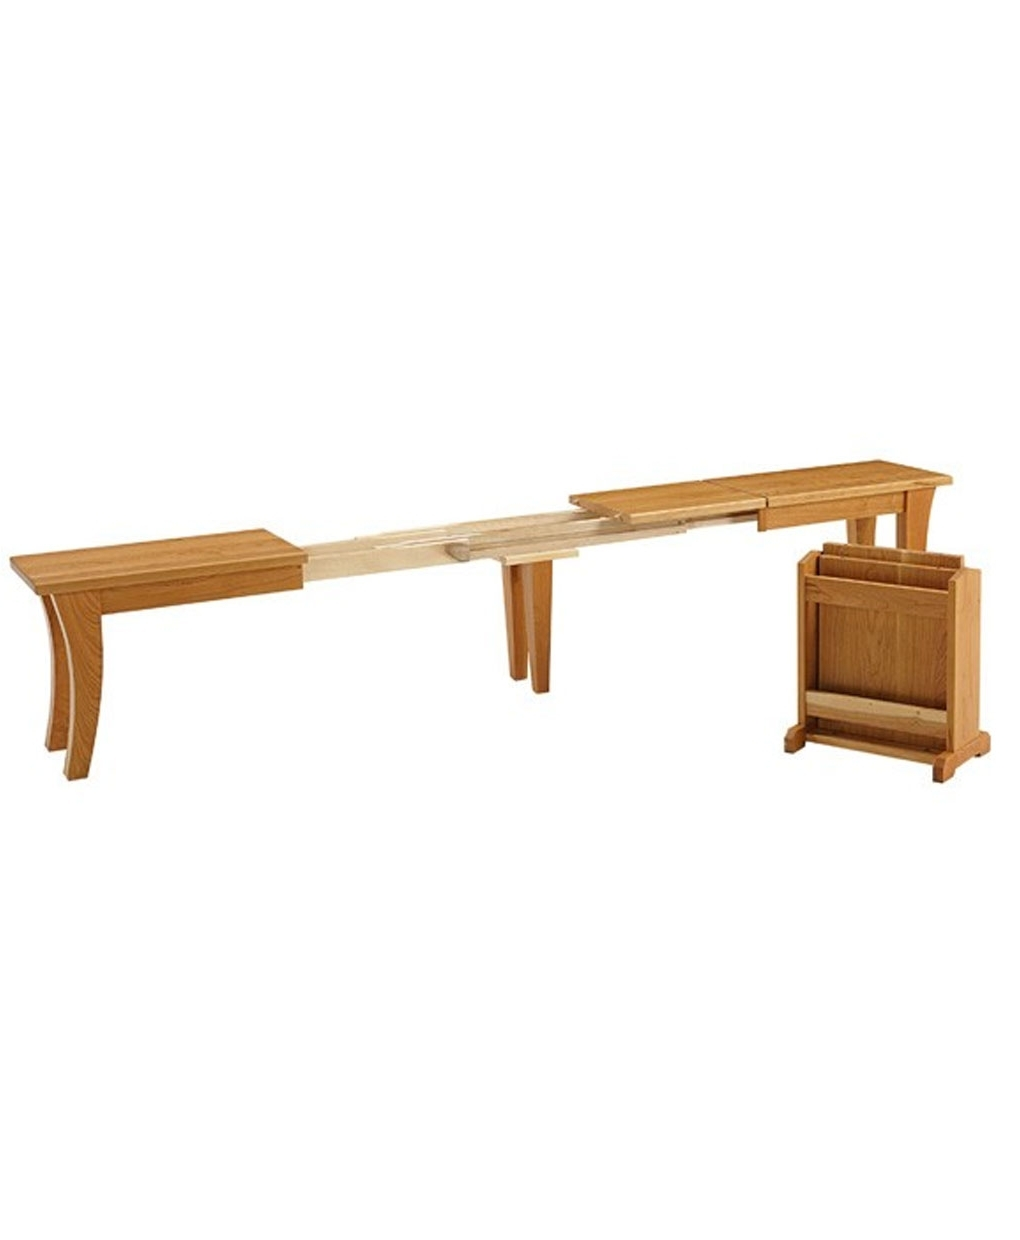 Chandler Extension Dining Tables Inside Well Liked Chandler Extend A Bench – Amish Direct Furniture (View 10 of 25)